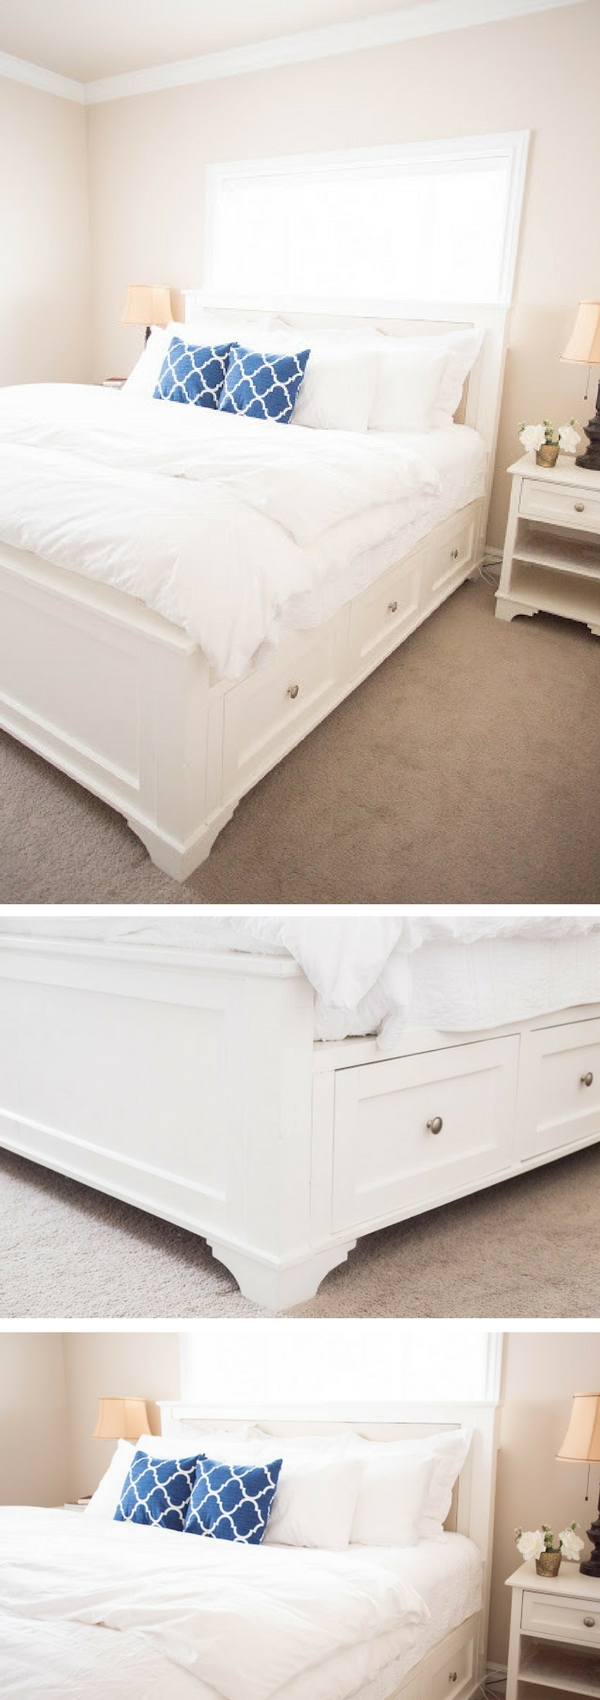 45 Easy DIY Bed Frame Projects You Can Build on a Budget - Check out how to build a DIY king size bed